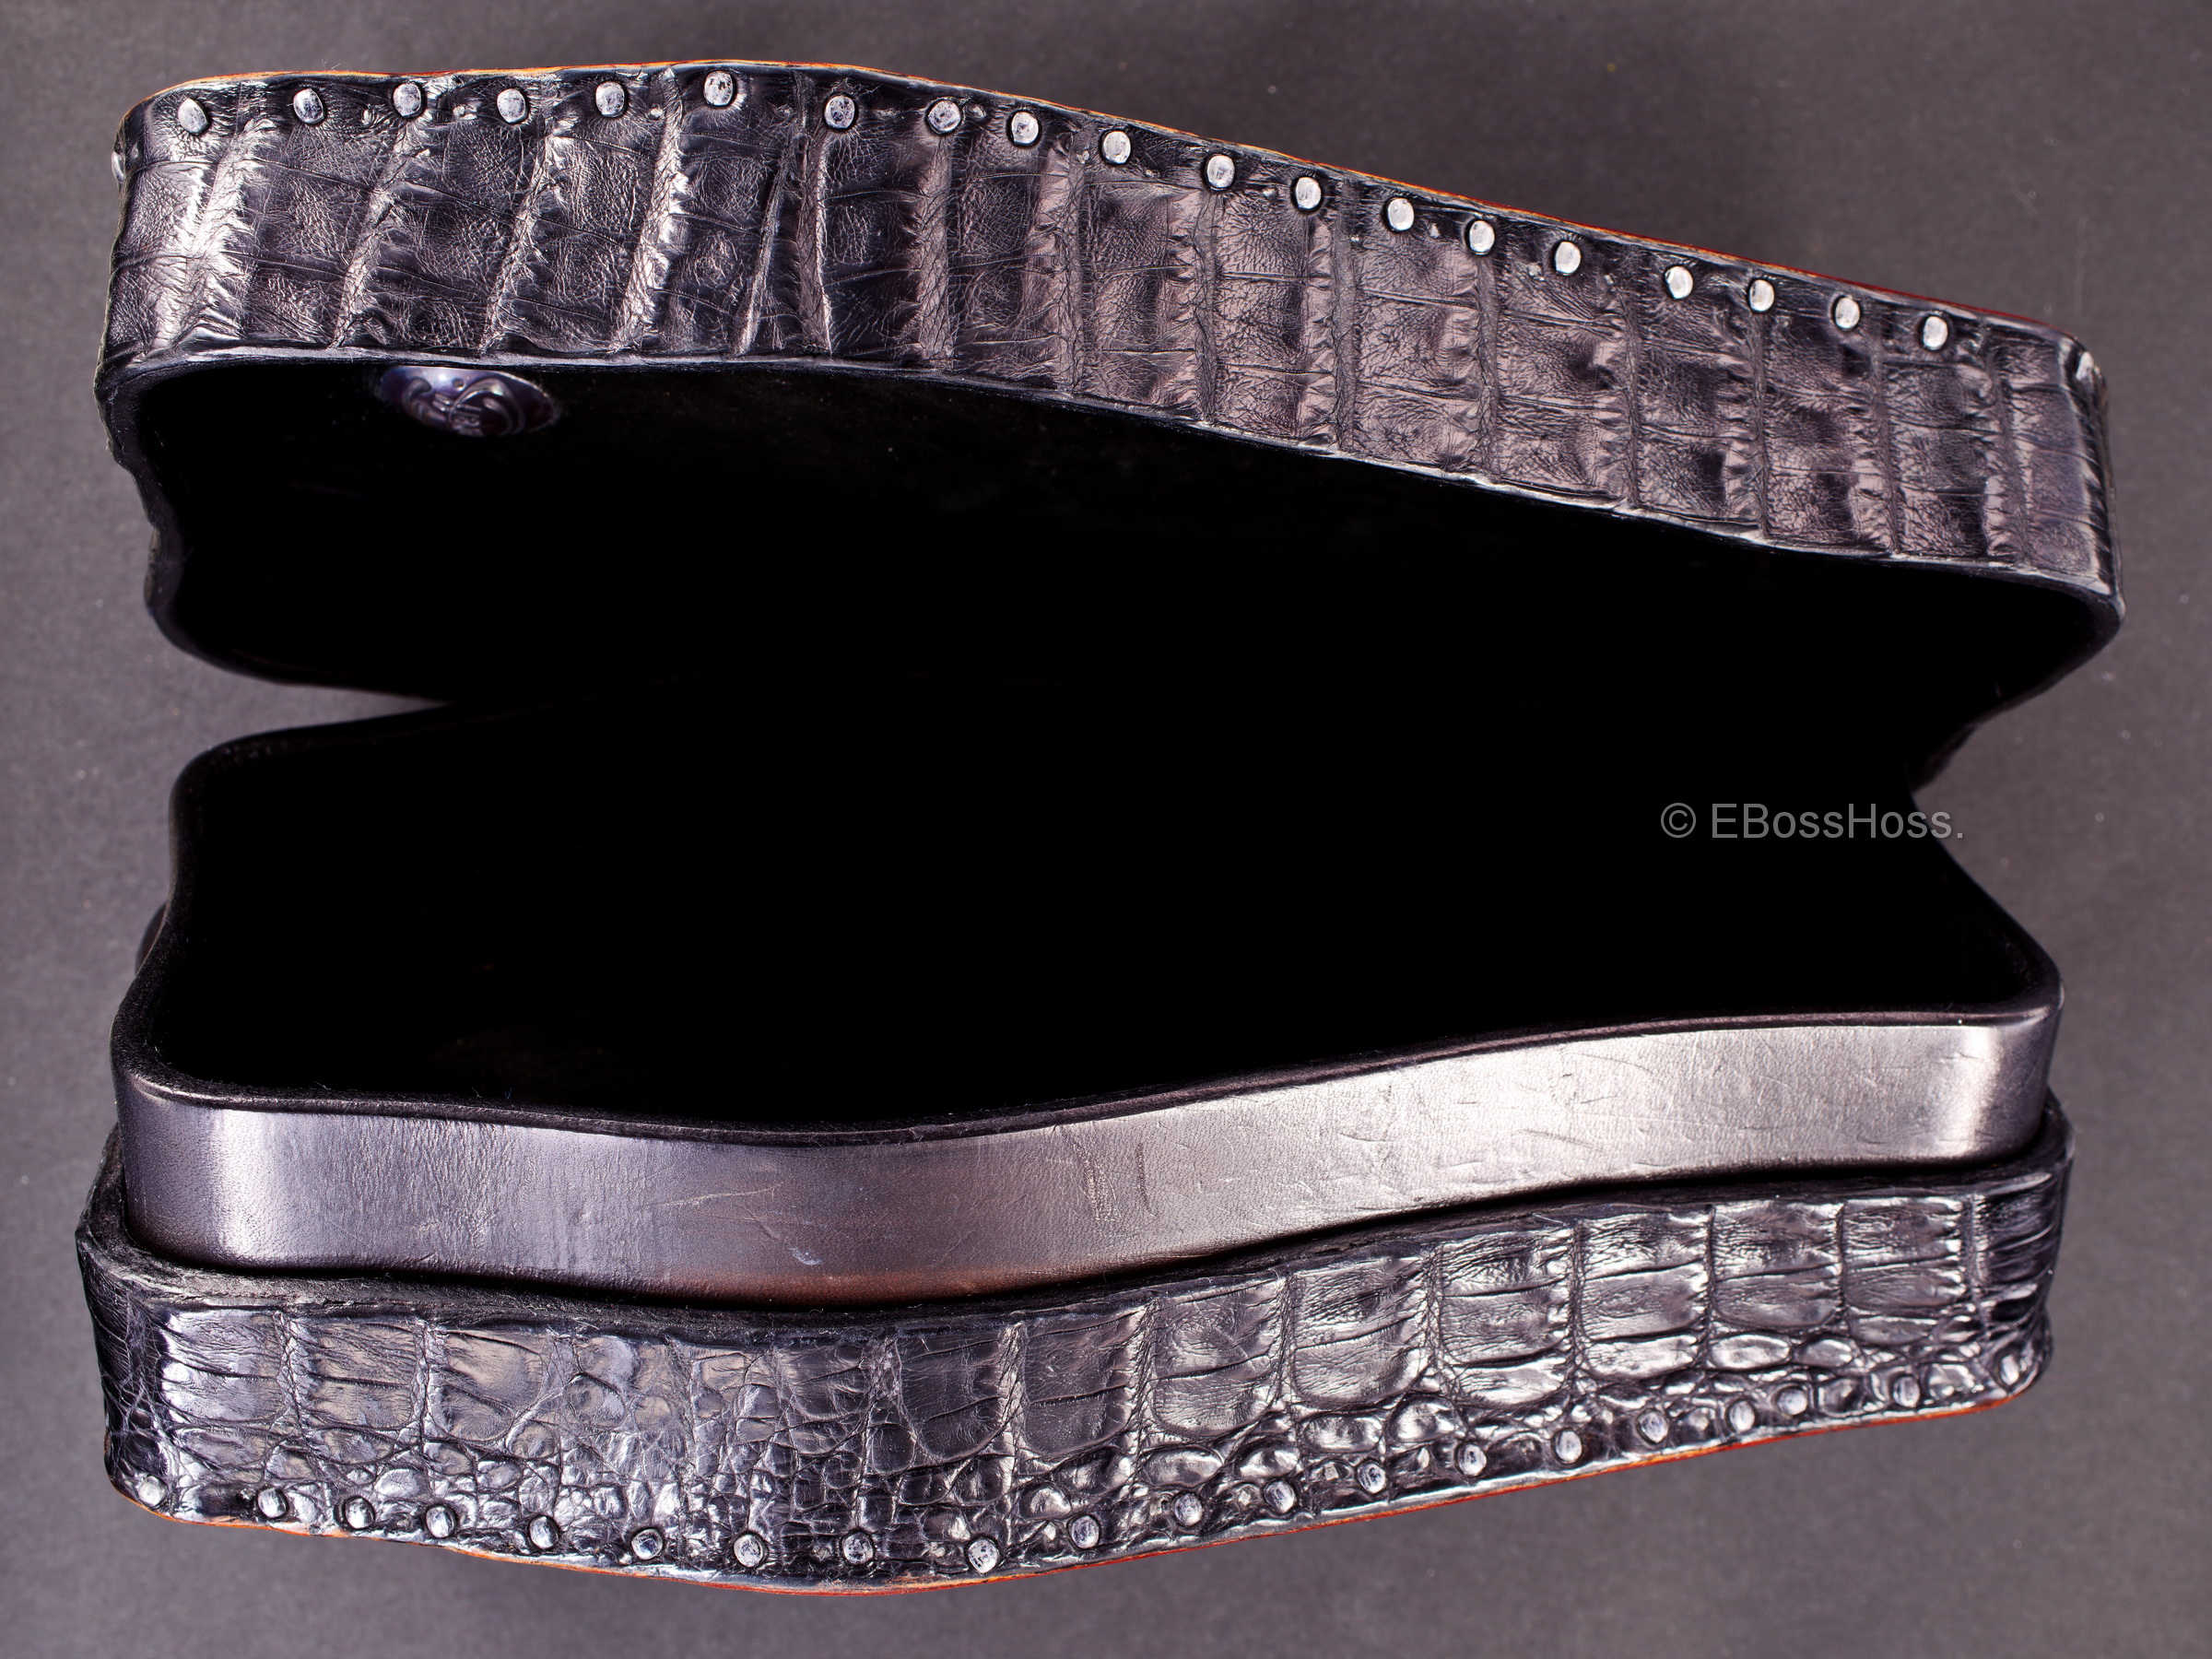 Starlingear Hand-made Alligator Coffin Box with Gator Hinges by Greg Everett, Leathersmith